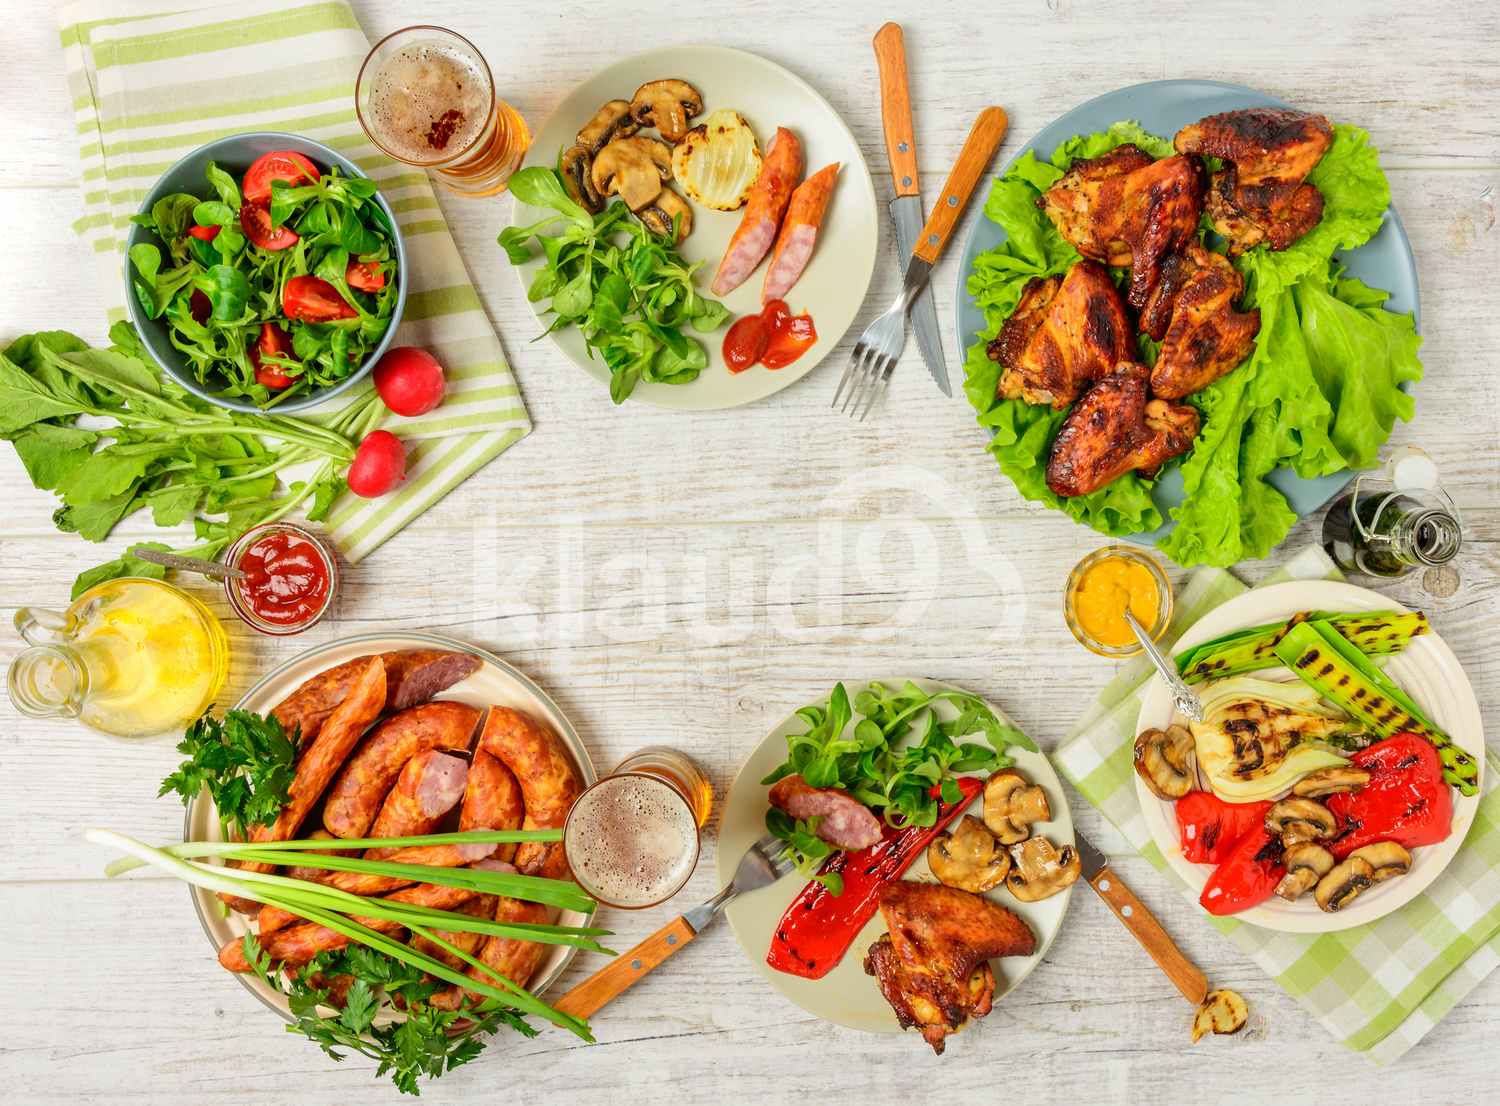 Dinner table with variety food